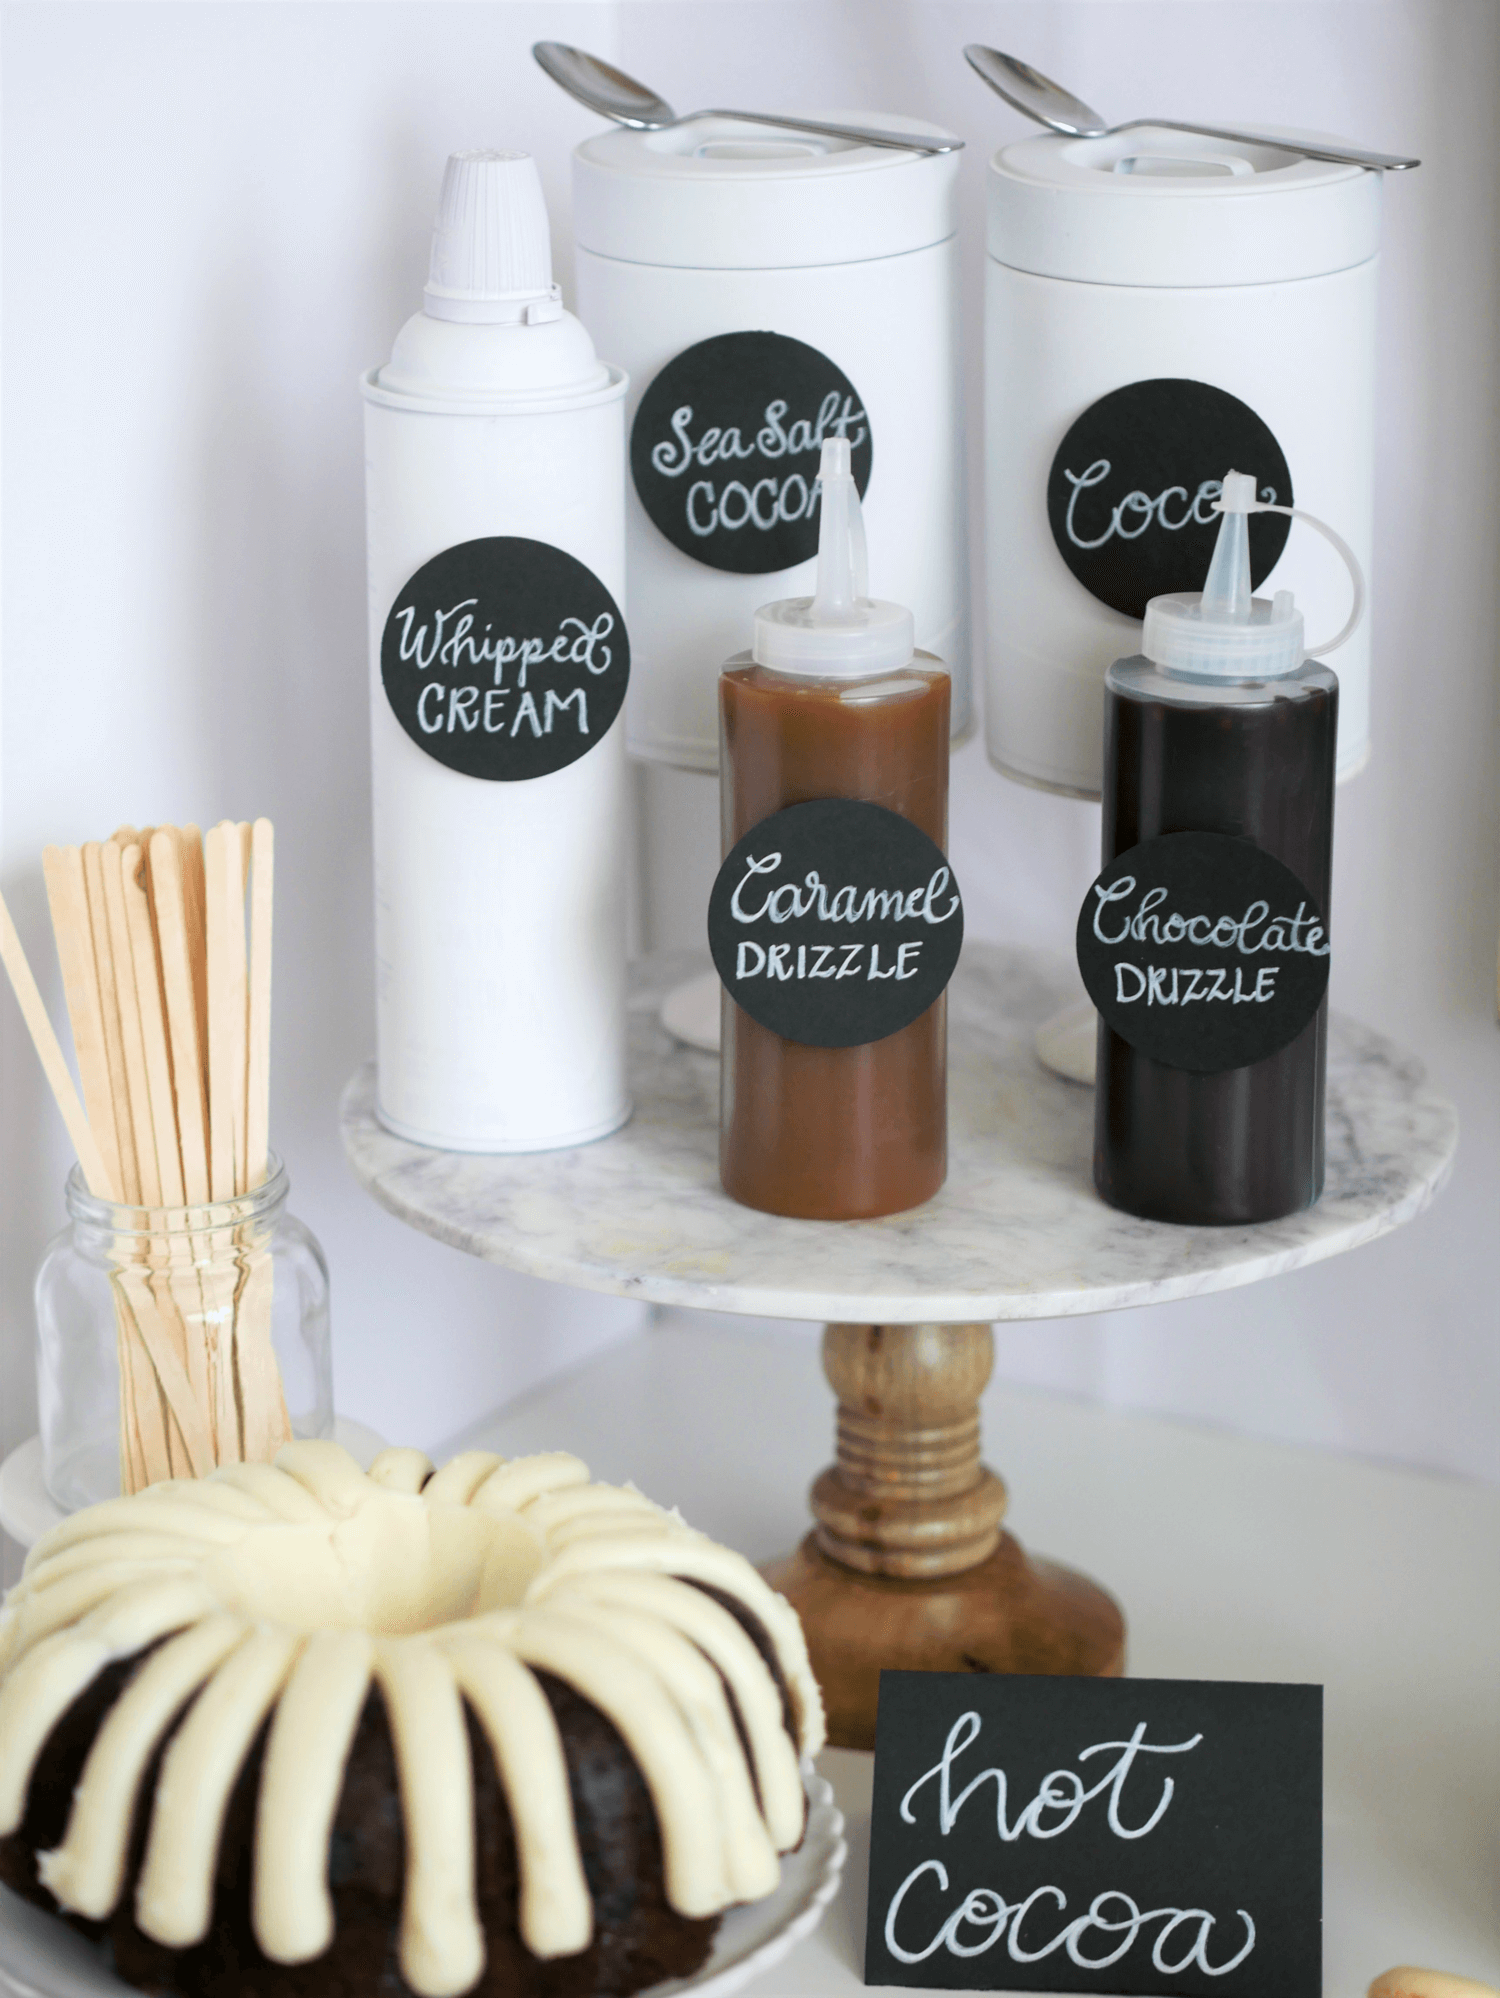 A Nothing Bundt Cake in Chocolate Chip Flavor is the special desert in this DIY Hot Cocoa and Coffee Station with special drizzle sauce for the drinks. Styled by party stylist Mint Event Design. #partyideas #partyinspiration #hotchocolate #hotcocoa #coffeebar #coffeestation #winterparty #winterwedding #bundtcake